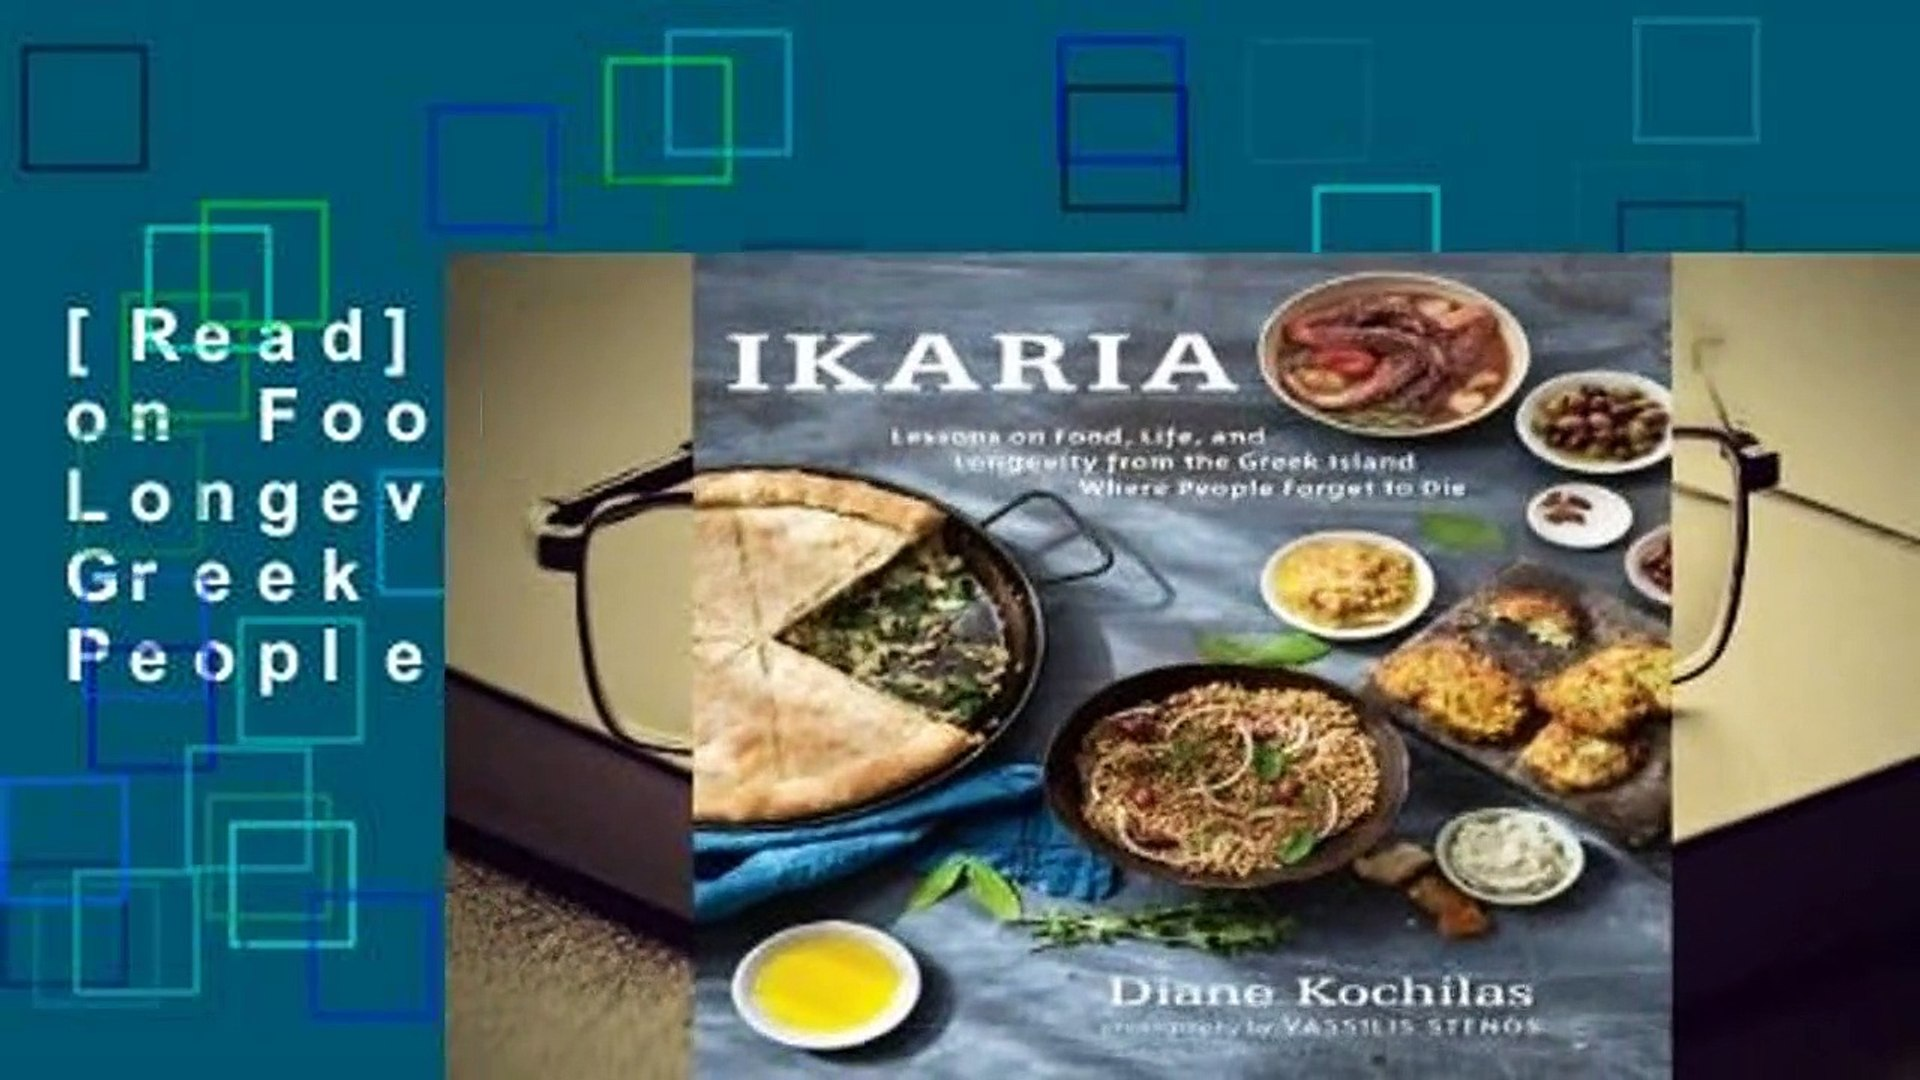 [Read] Ikaria: Lessons on Food, Life, and Longevity from the Greek Island Where People Forget to